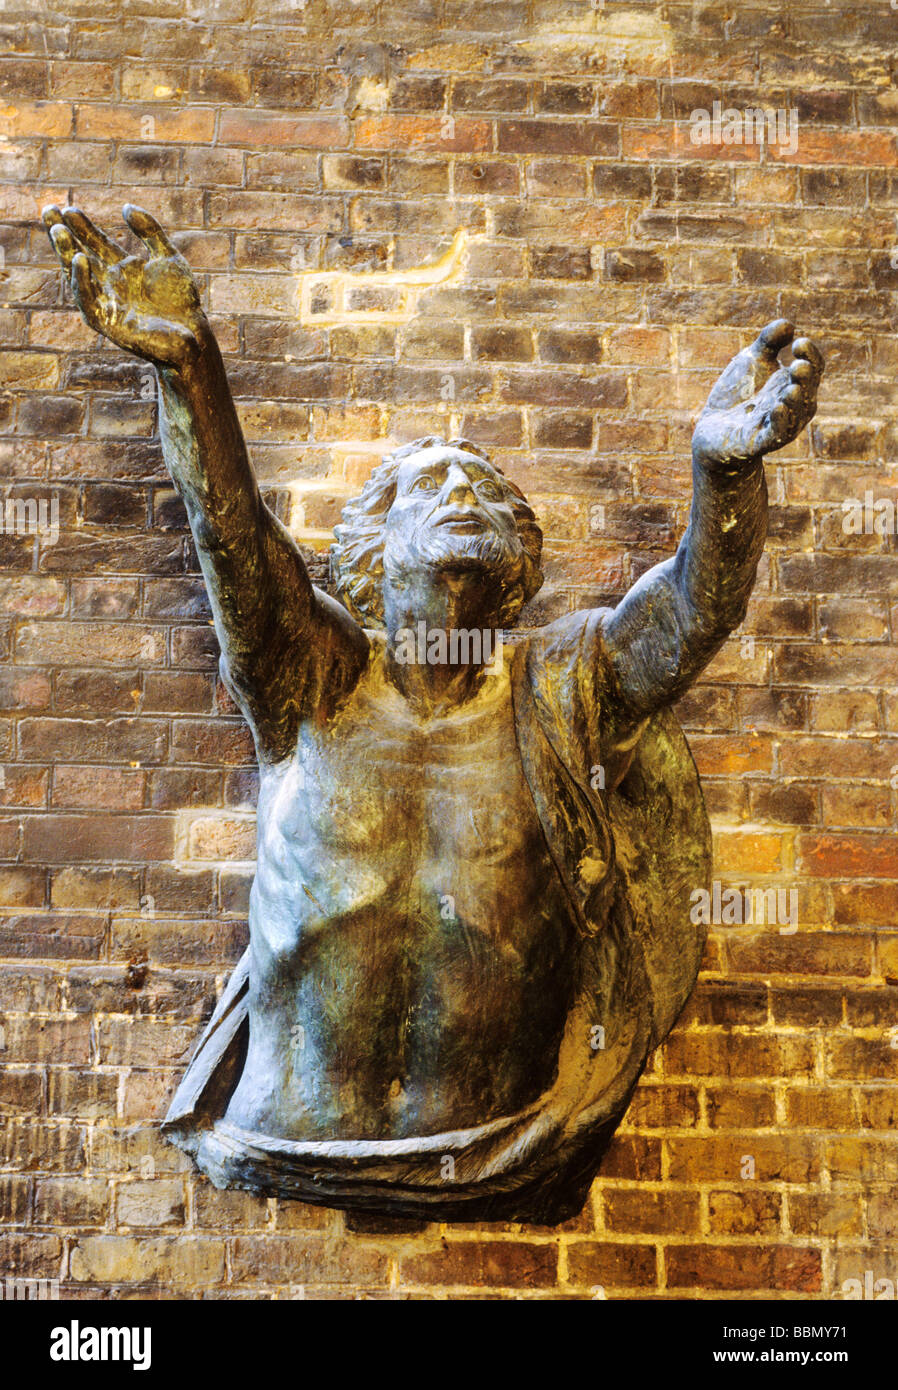 Bronze sculpture by Hans Feibusch St Alban the Martyr church Clerkenwell 'Jesus rising from the dead' london - Stock Image